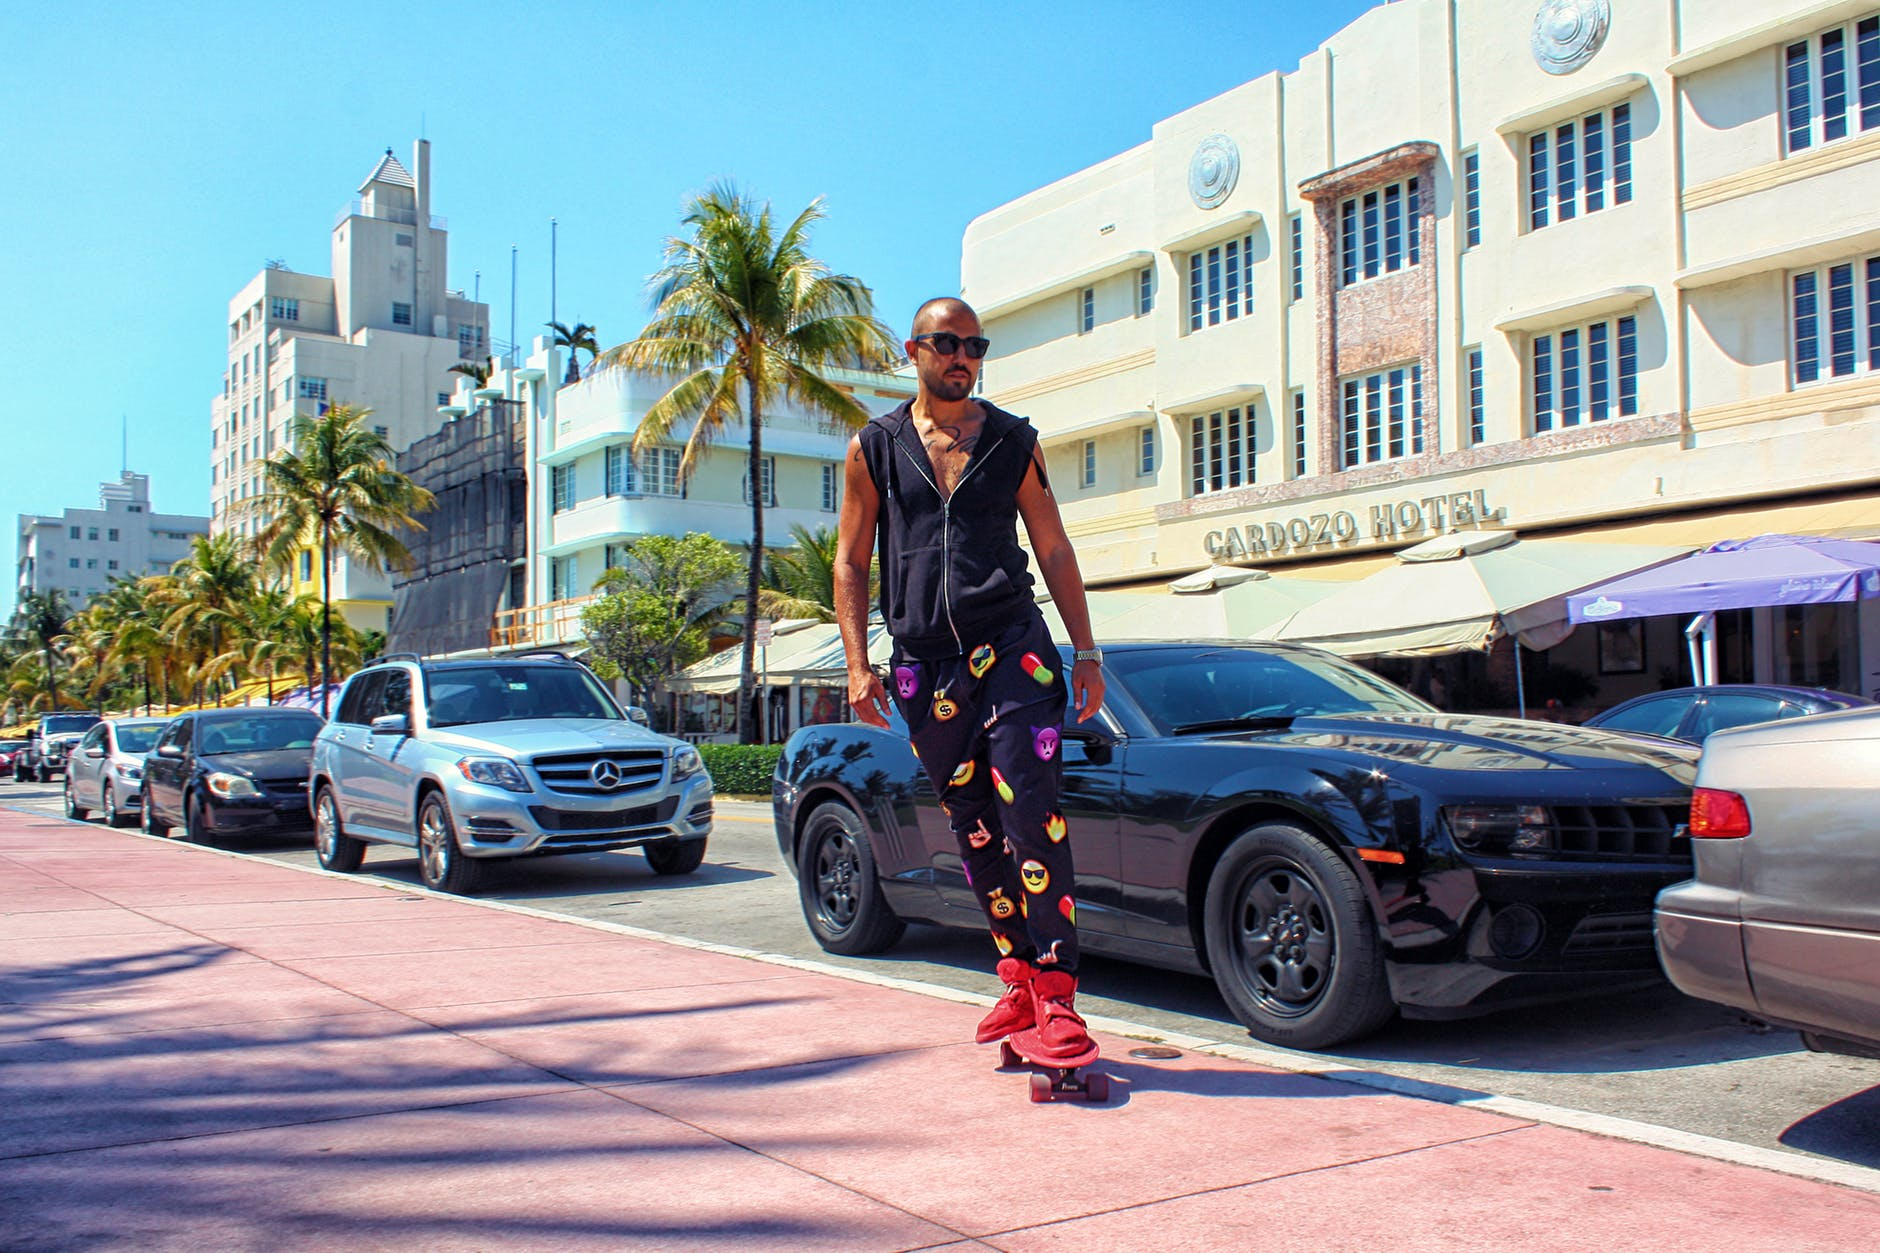 A man on the sidewalk in Miami. He is on a red skateboard. If you want to experience Miami like a local, you might need to make some adjustments to your lifestyle.